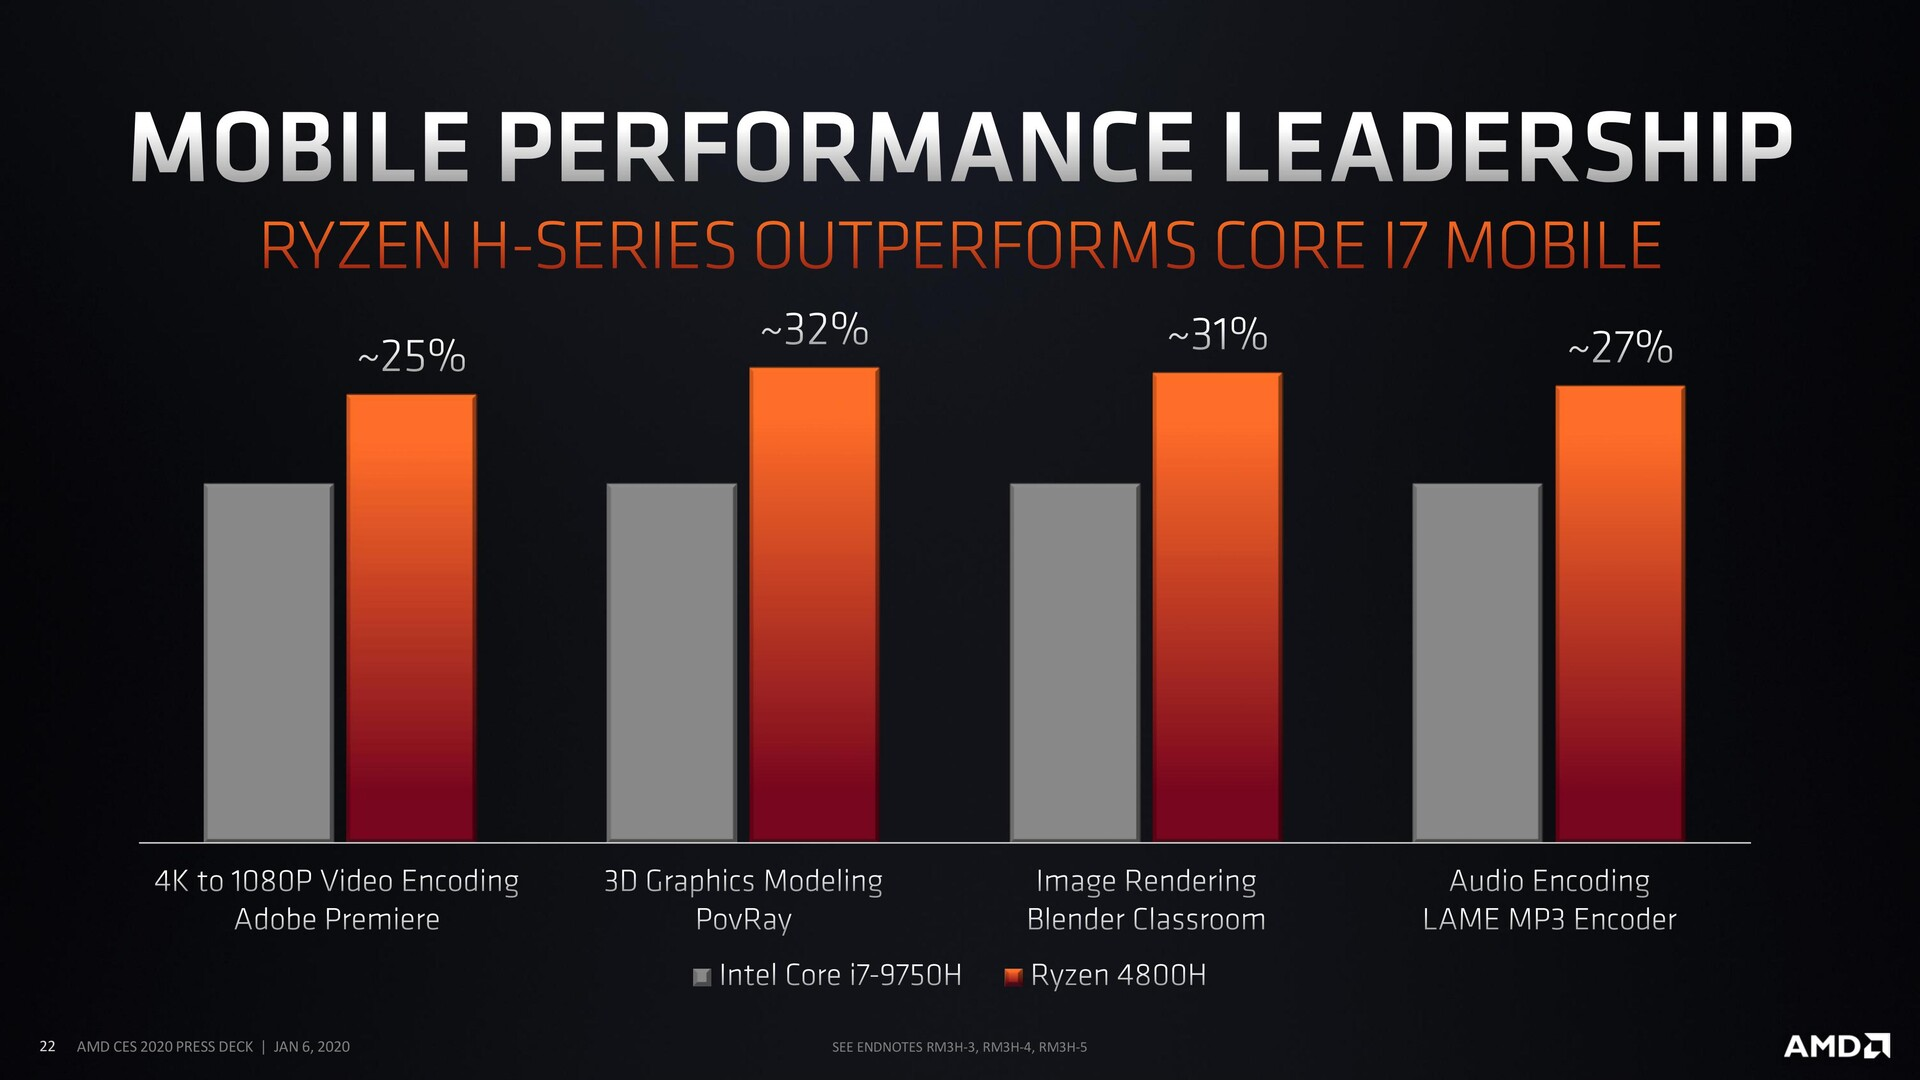 Updated Amd Ryzen Mobile 4000 U And H Series Apus Bring 7nm 8c 16t Goodness To Laptops First Benchmarks Show Amd Clobbering Intel Core I7 1065g7 And Core I7 9750h For Big Gains Notebookcheck Net News